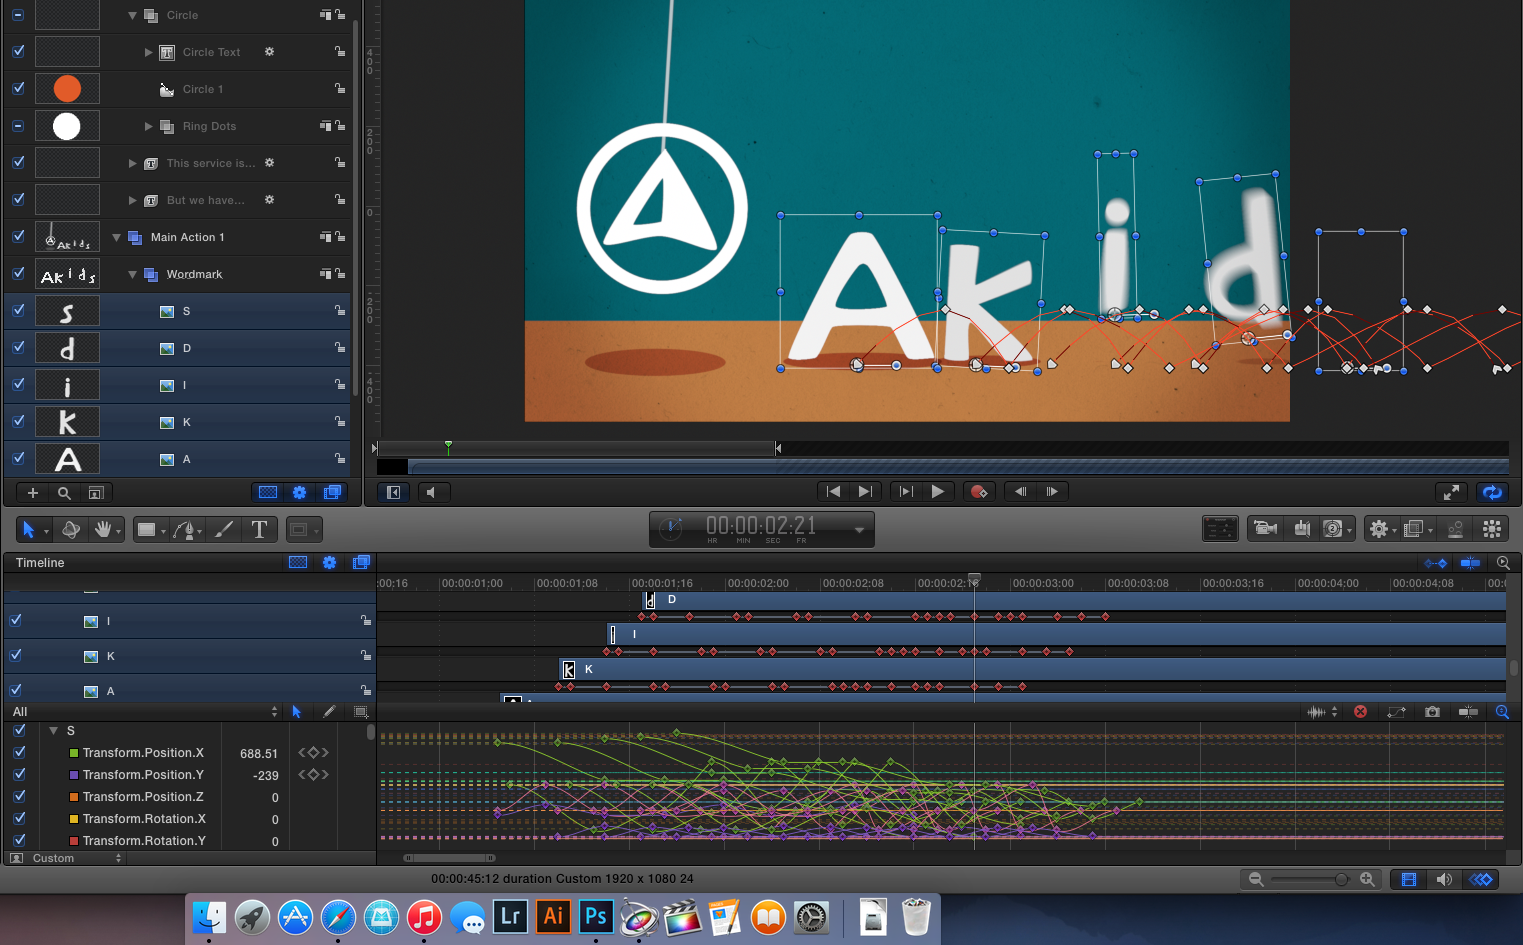 Animating the AKids Scene